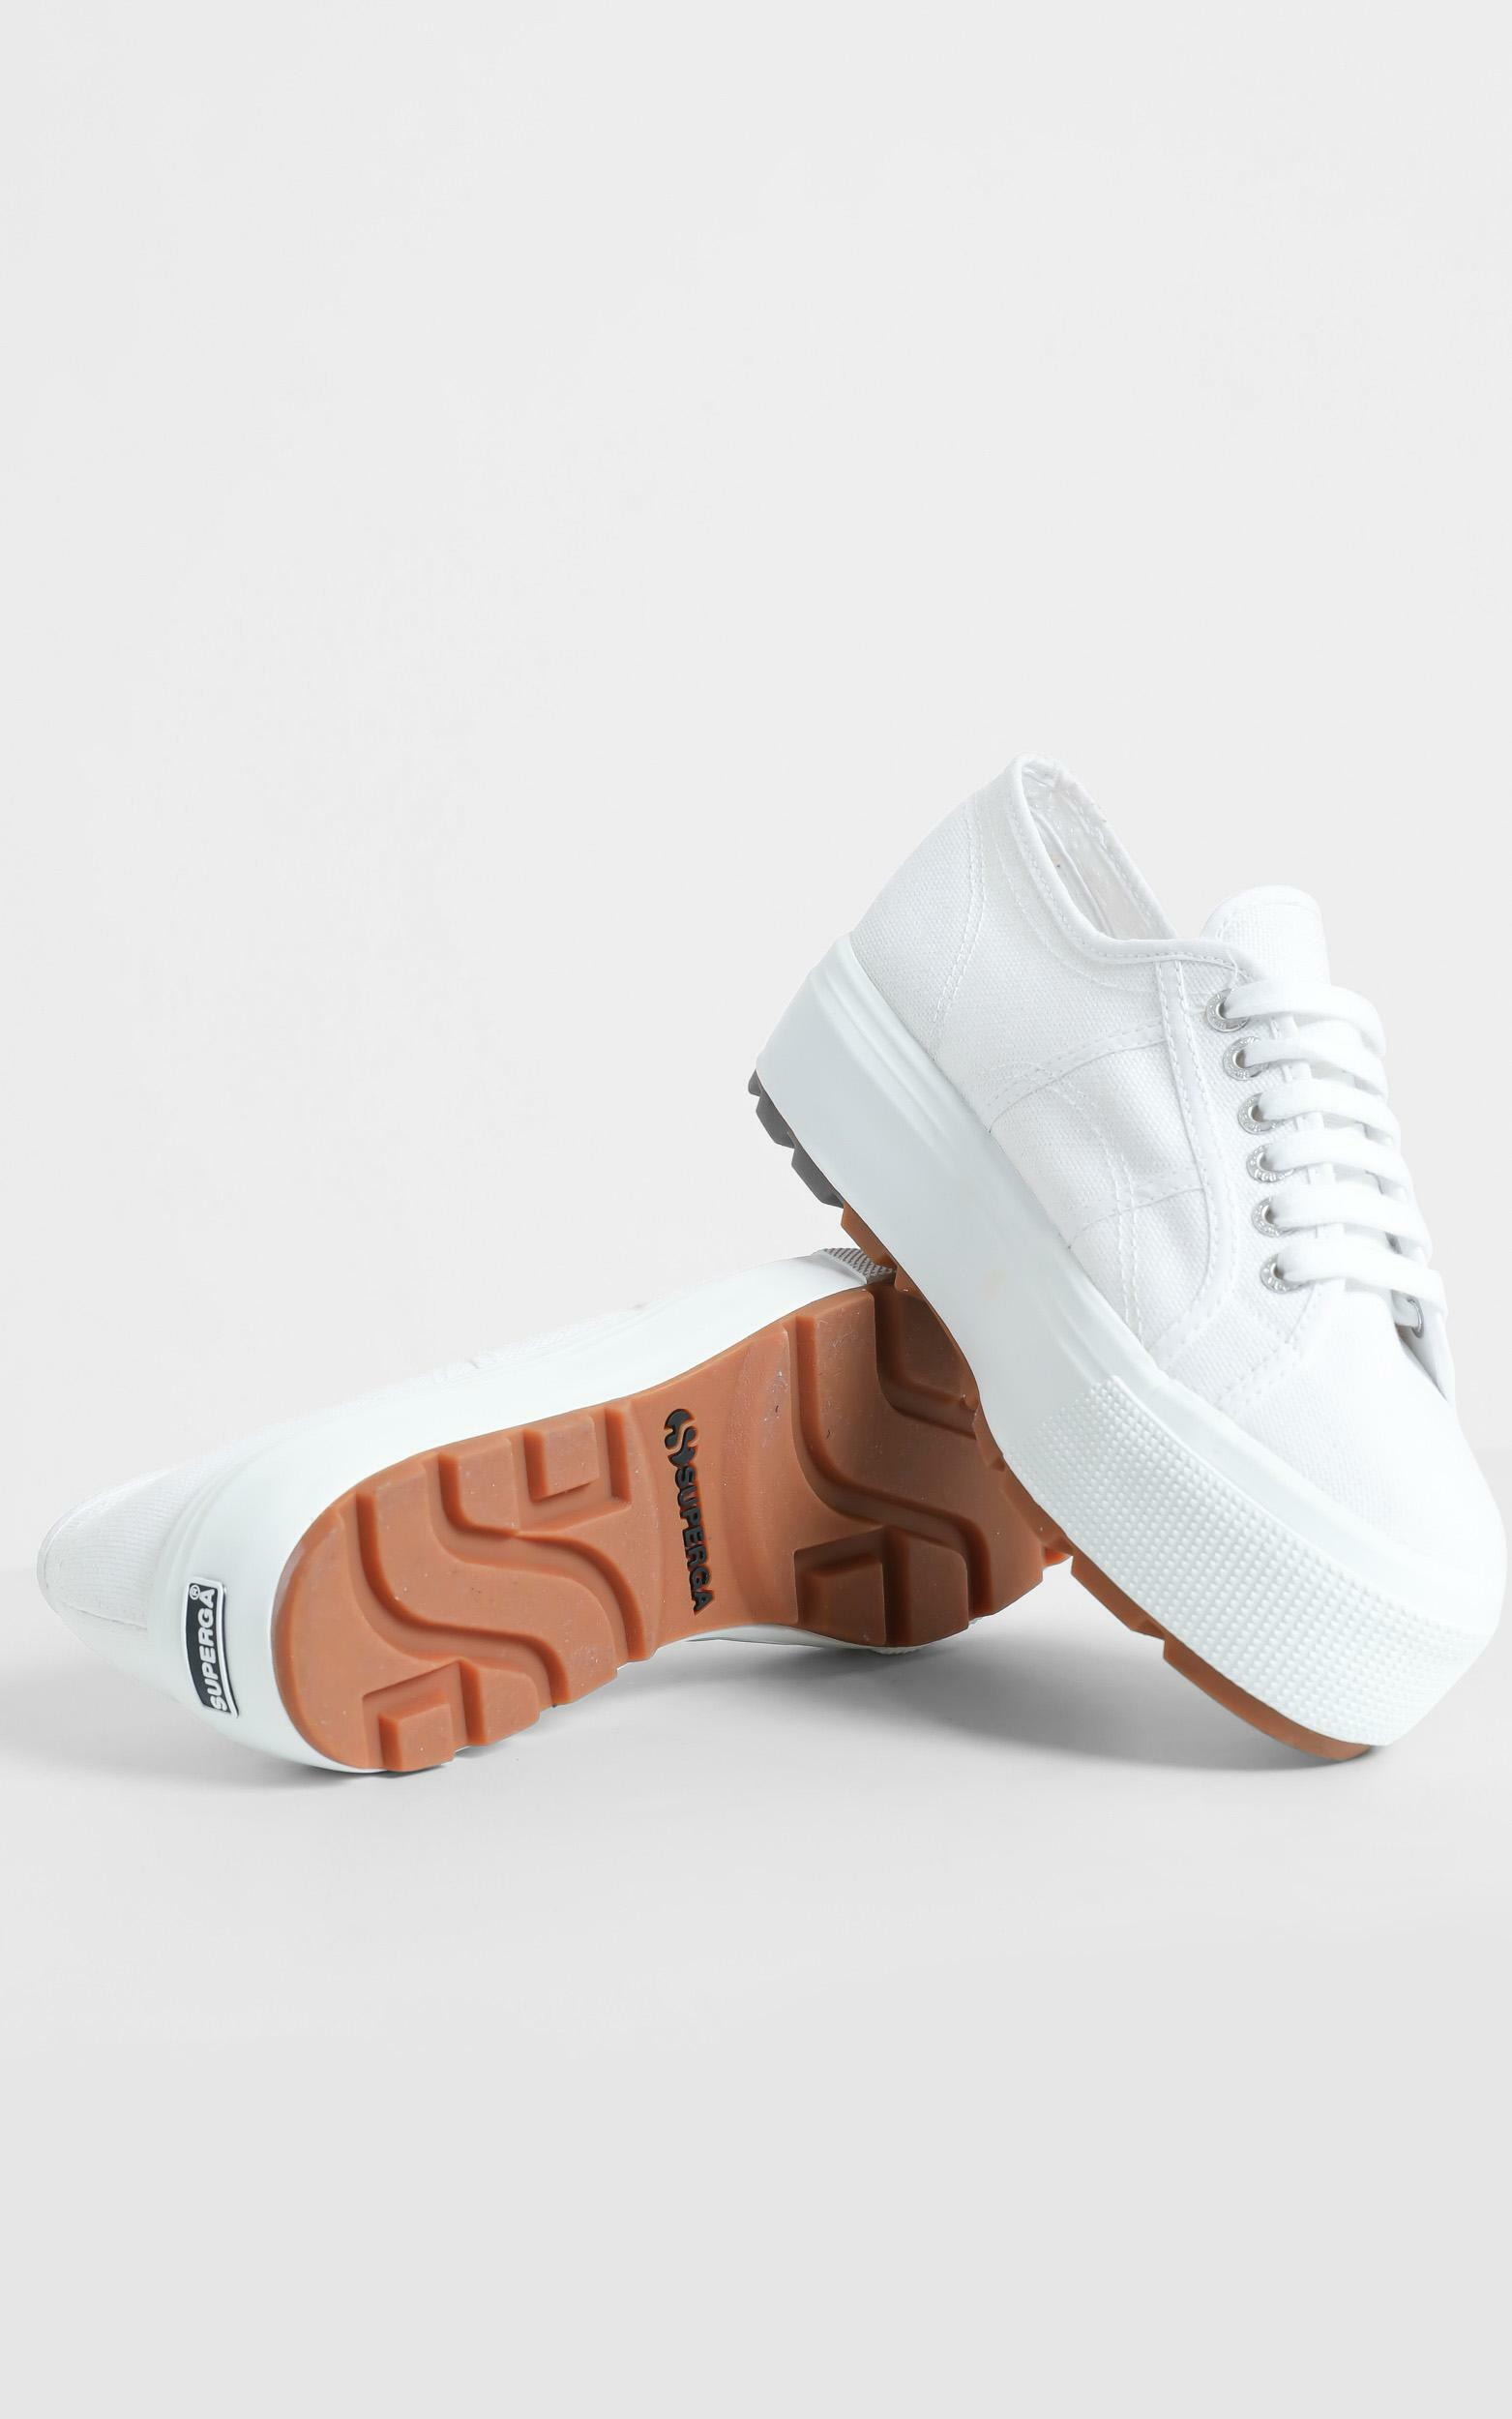 Superga - 2790 Tank COTW sneaker in white - 5, WHT5, hi-res image number null